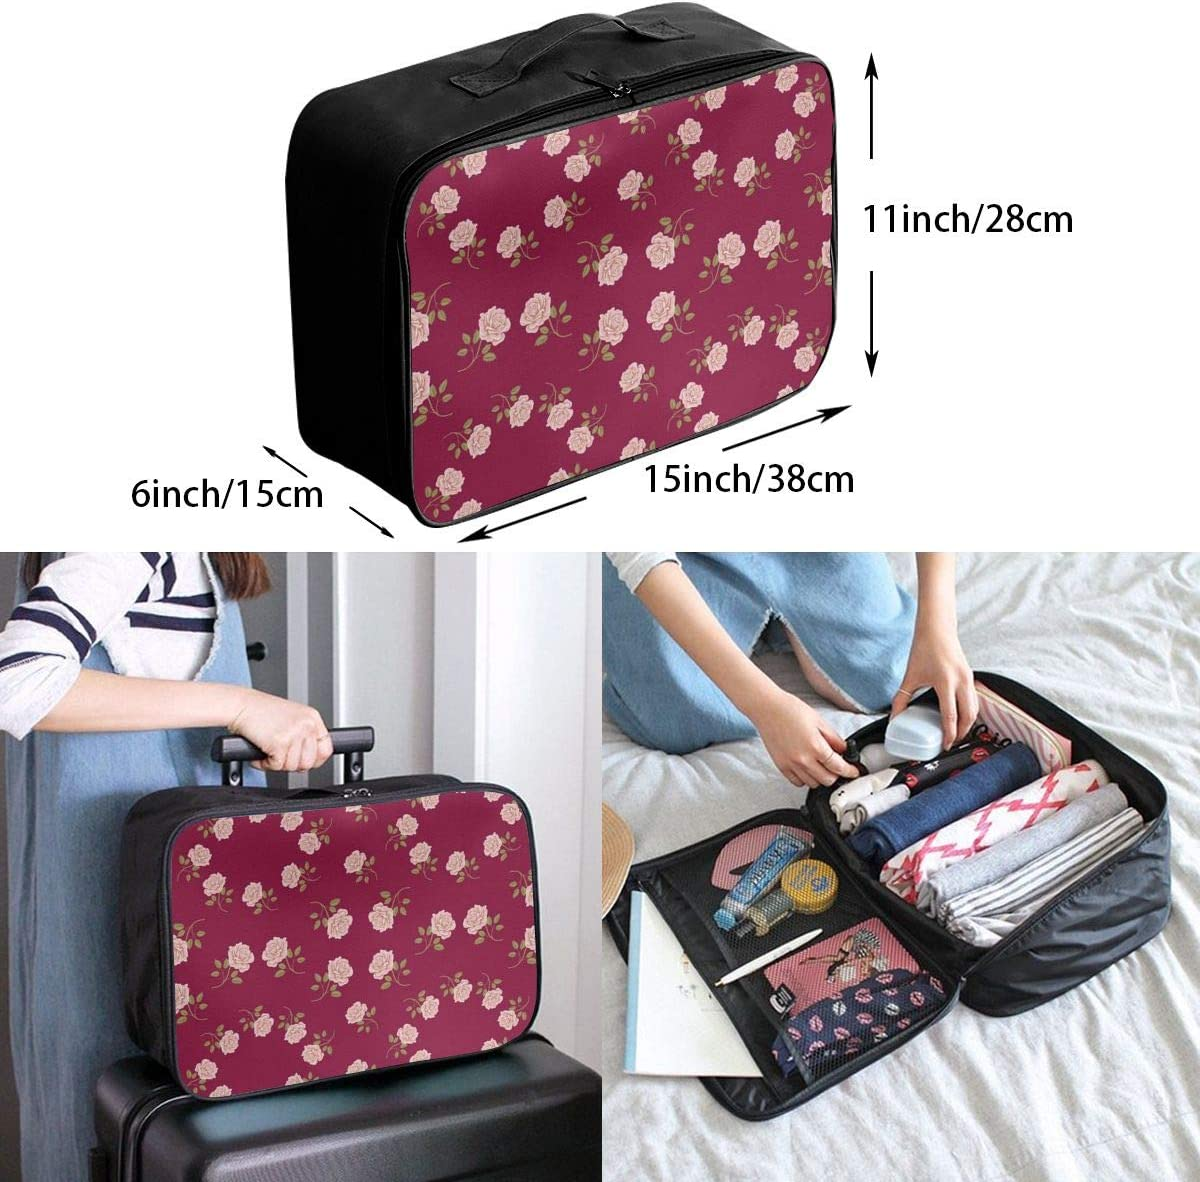 Yunshm Seamless Vintage Roses Pattern Vector Image Personalized Trolley Handbag Waterproof Unisex Large Capacity For Business Travel Storage